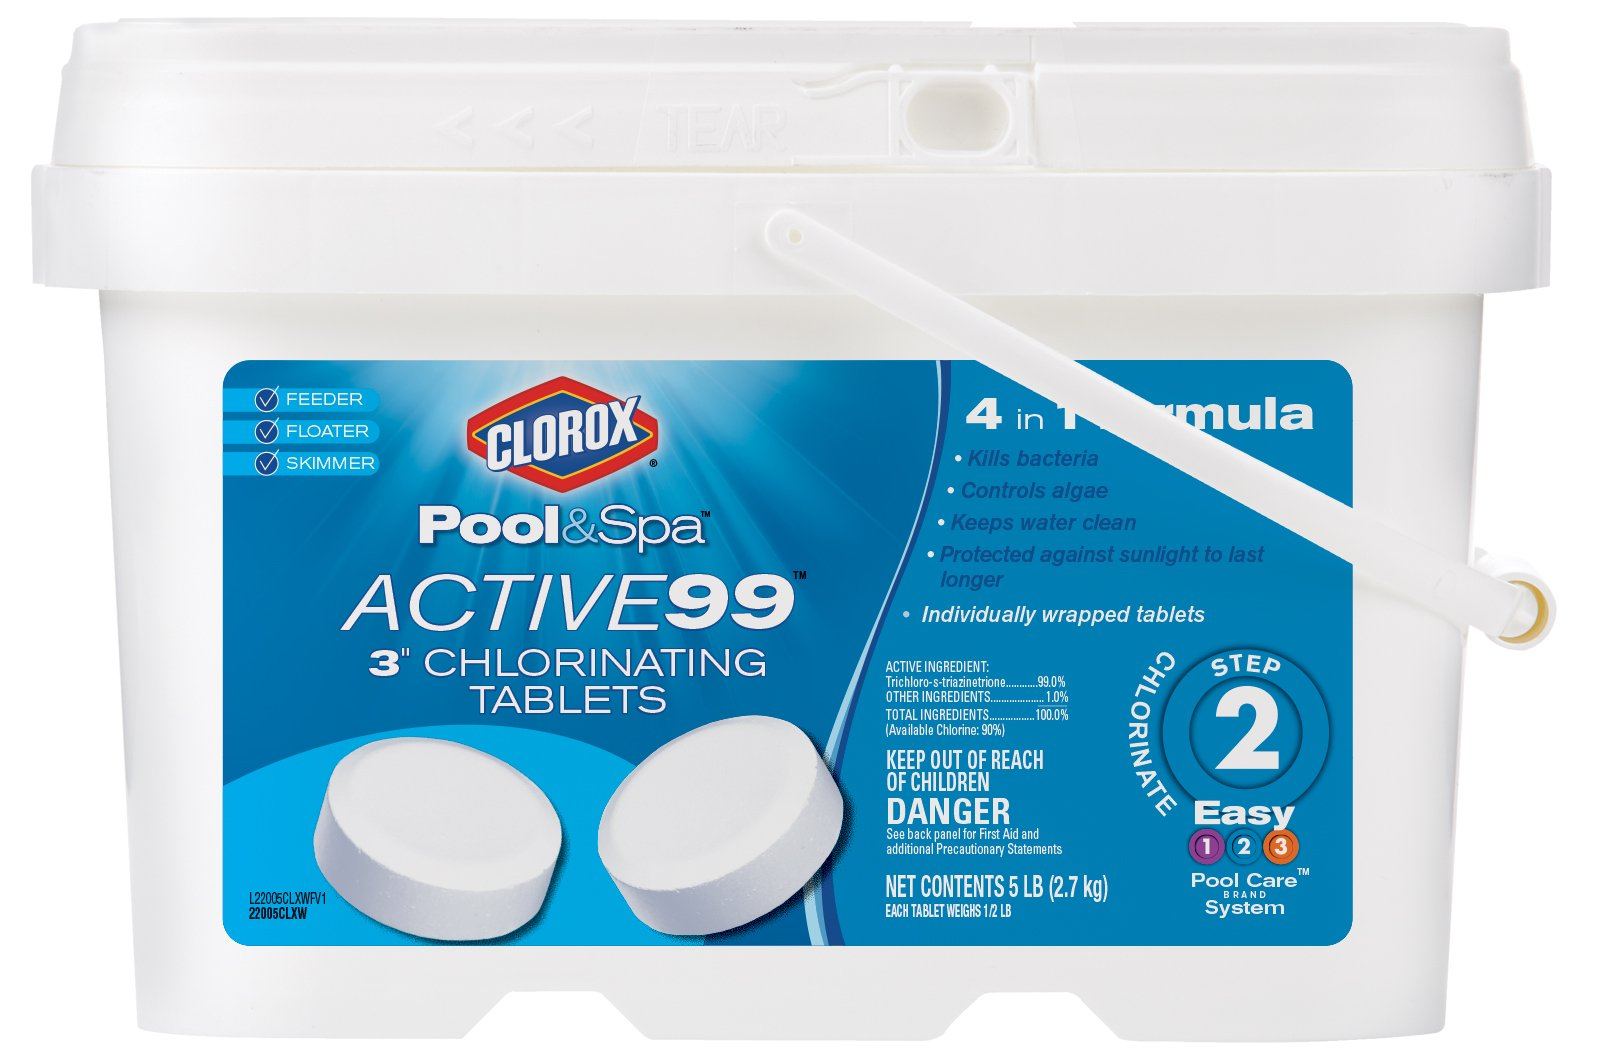 CLOROX Pool&Spa 22005CLXW Active99 3'' Chlorinating Tablets